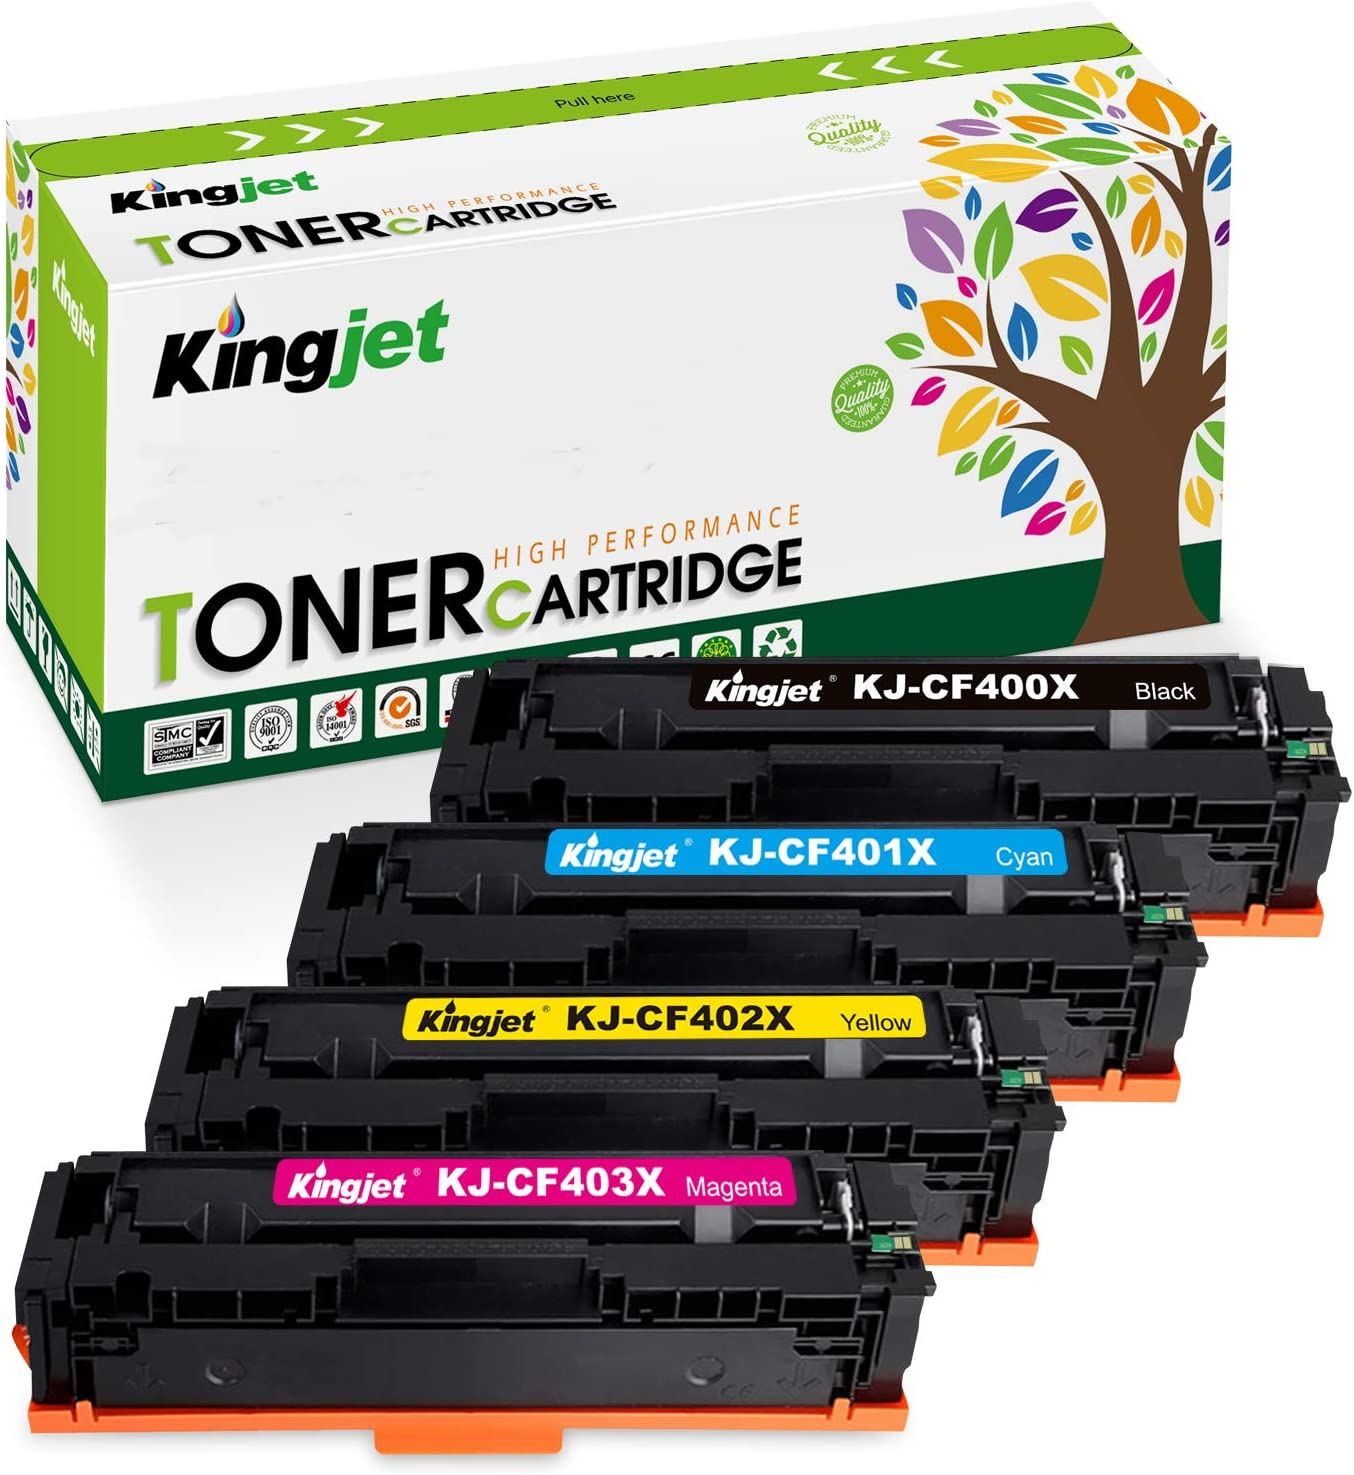 Kingjet Compatible Toner Cartridge Replacement for 201X CF400X 201A CF400A, Use with Color Laserjet Pro MFP M277dw M252dw M277c6 M277n M252n Printer (Black Cyan Magenta Yellow, 4-Pack, High Yield)